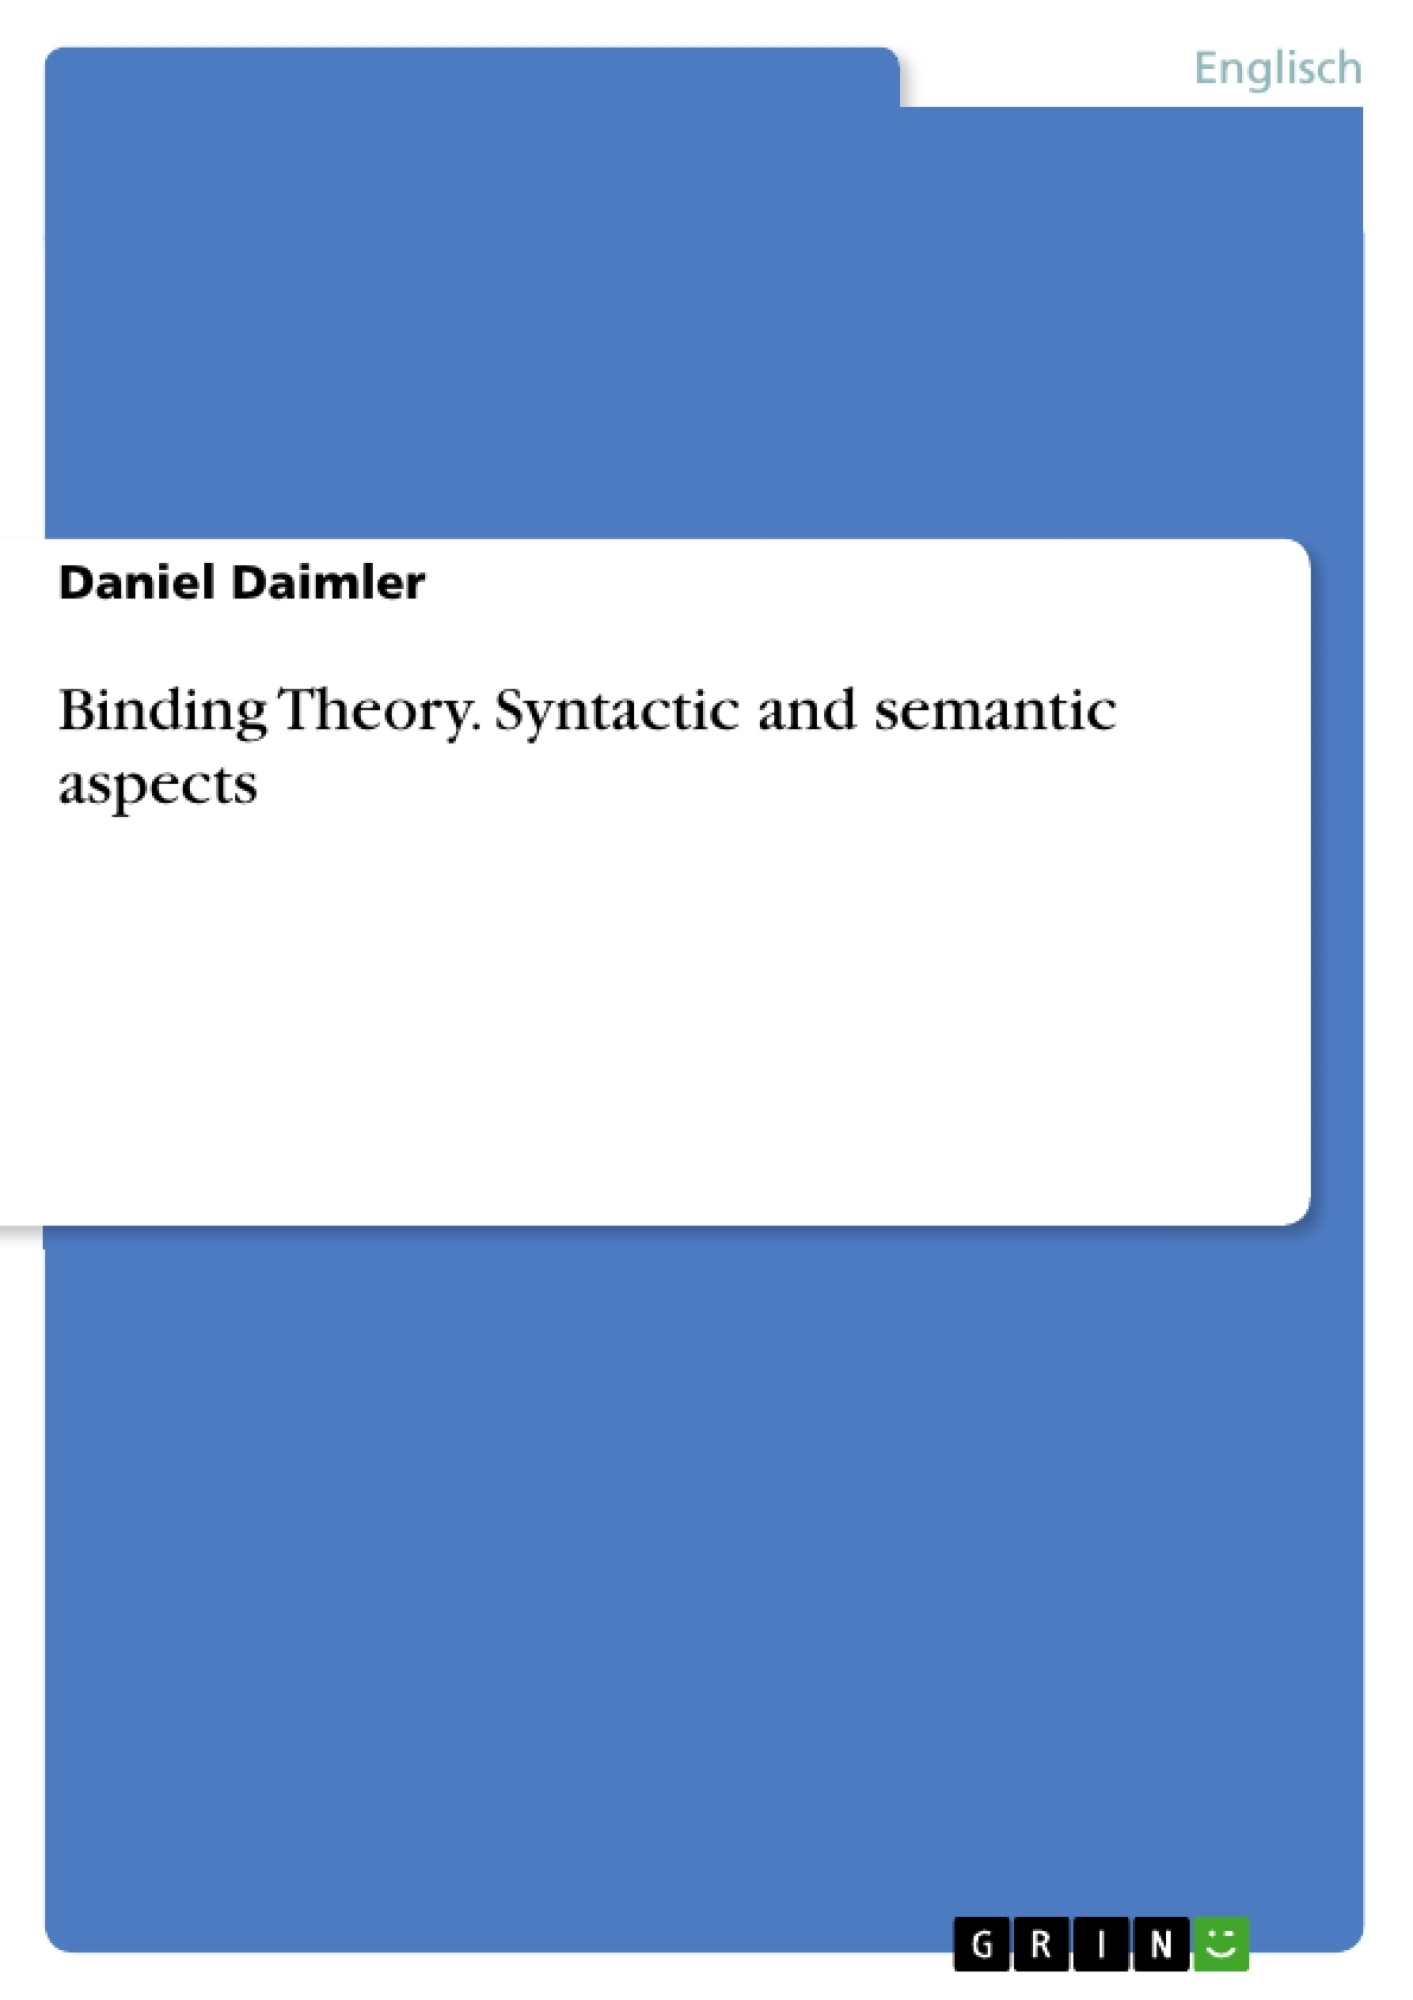 Titel: Binding Theory. Syntactic and semantic aspects